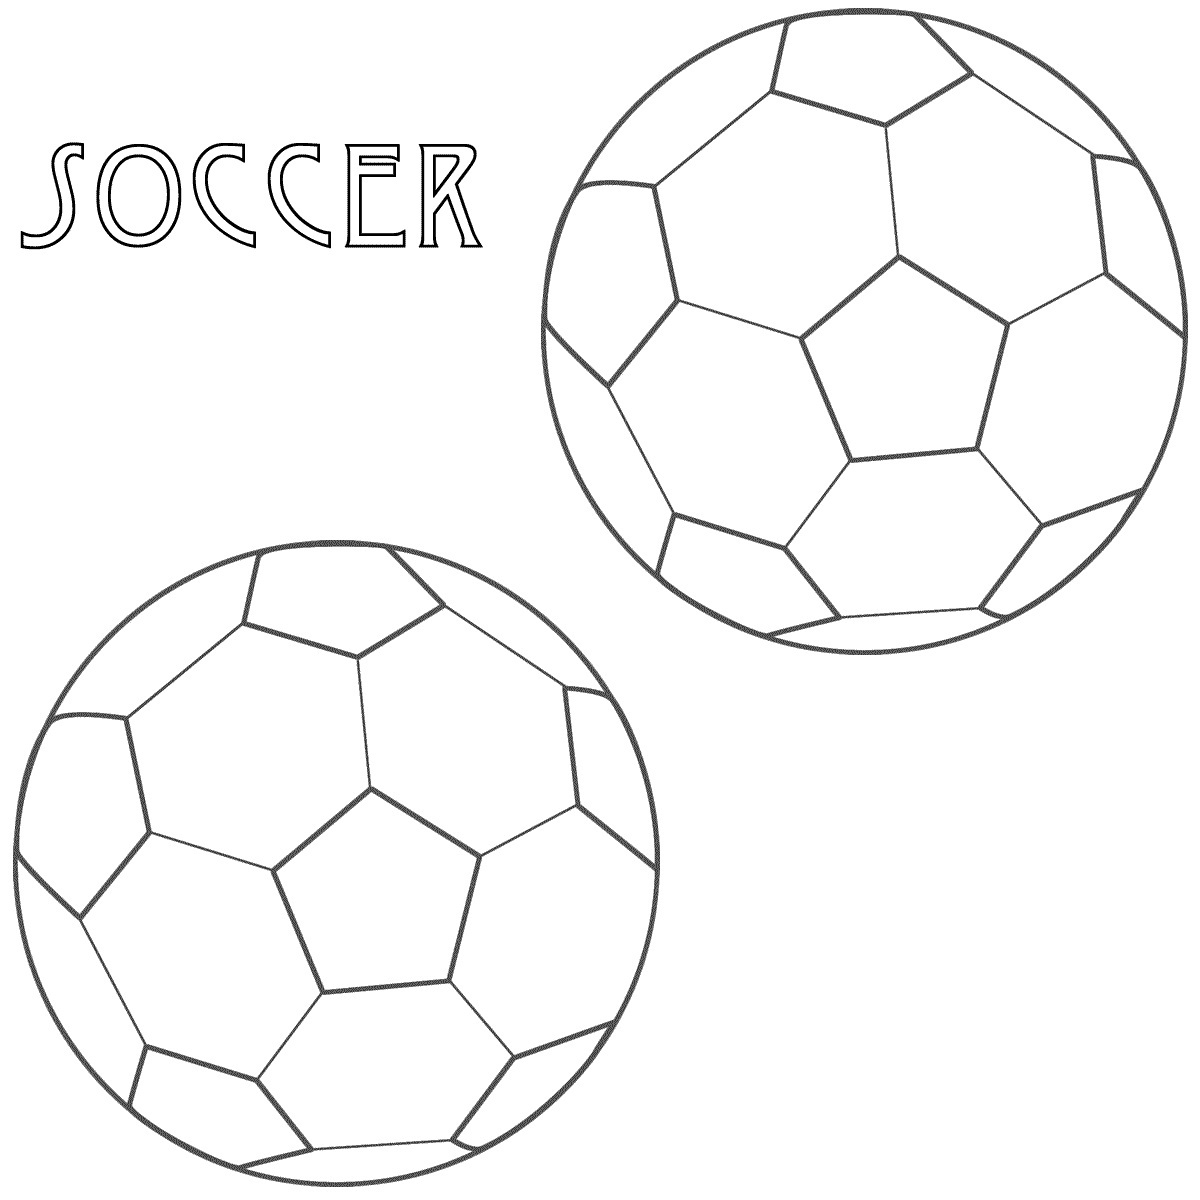 free printable soccer coloring pages for kids. Black Bedroom Furniture Sets. Home Design Ideas